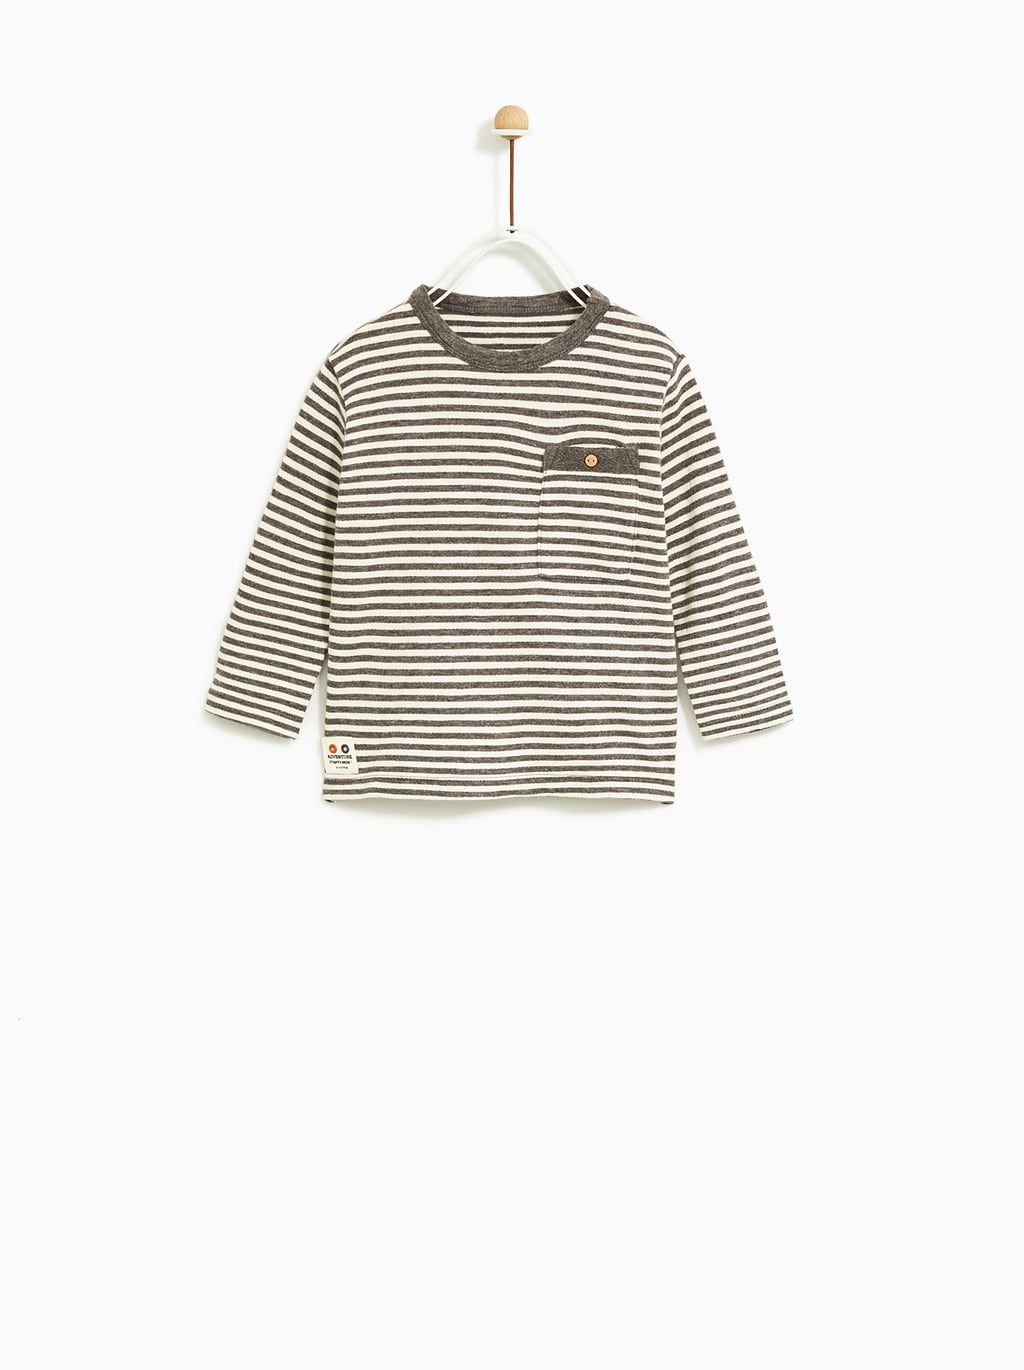 Image 1 Of Striped T Shirt From Zara Son Clothes Baby Clothes Country Baby Outfit Stylish